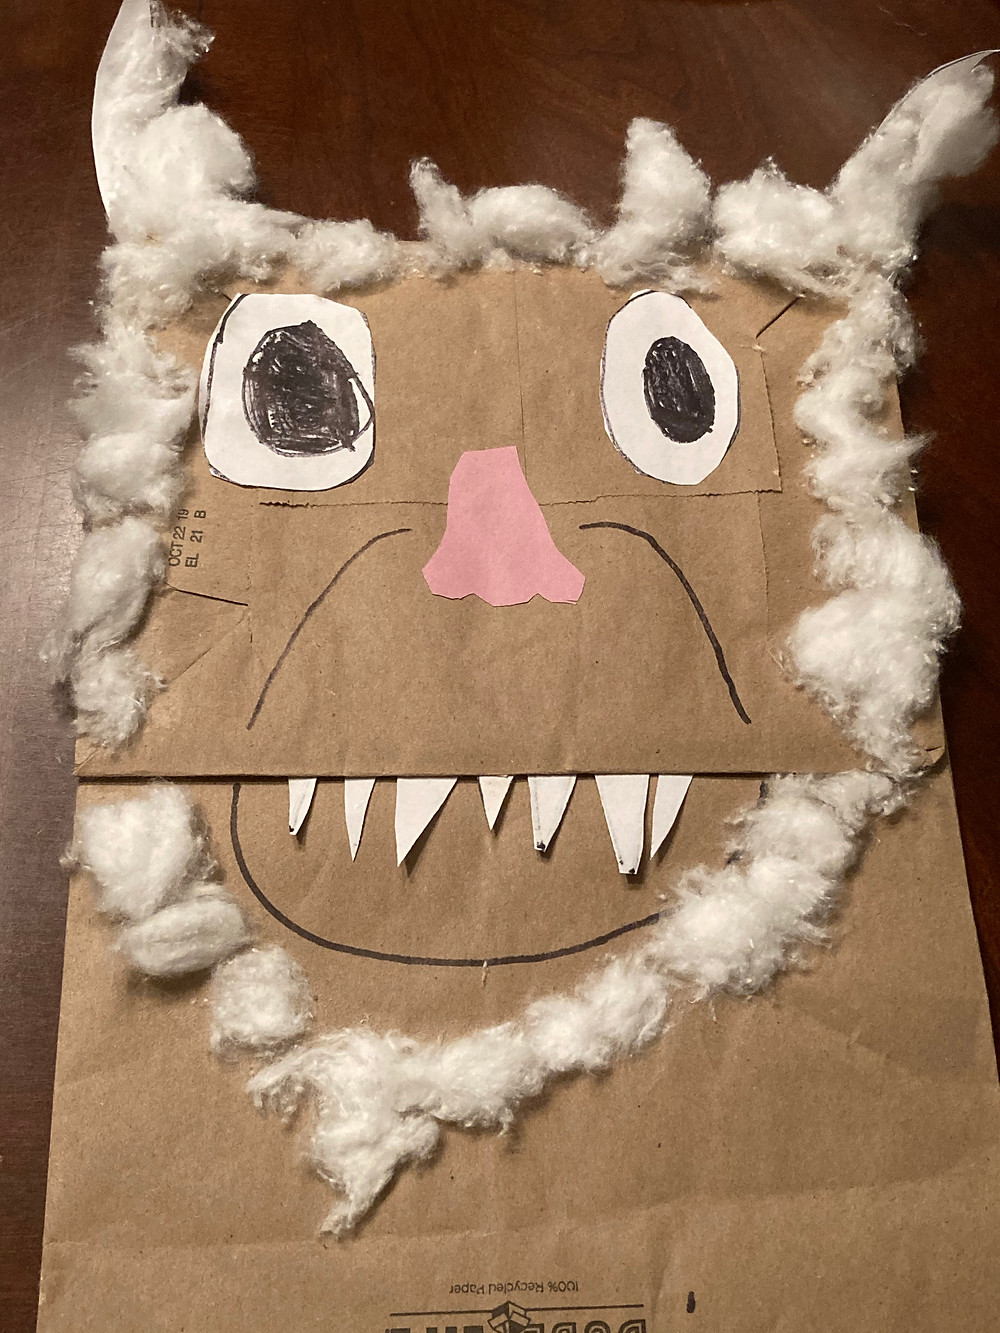 Mixed media representation of wild creature on paper bag.